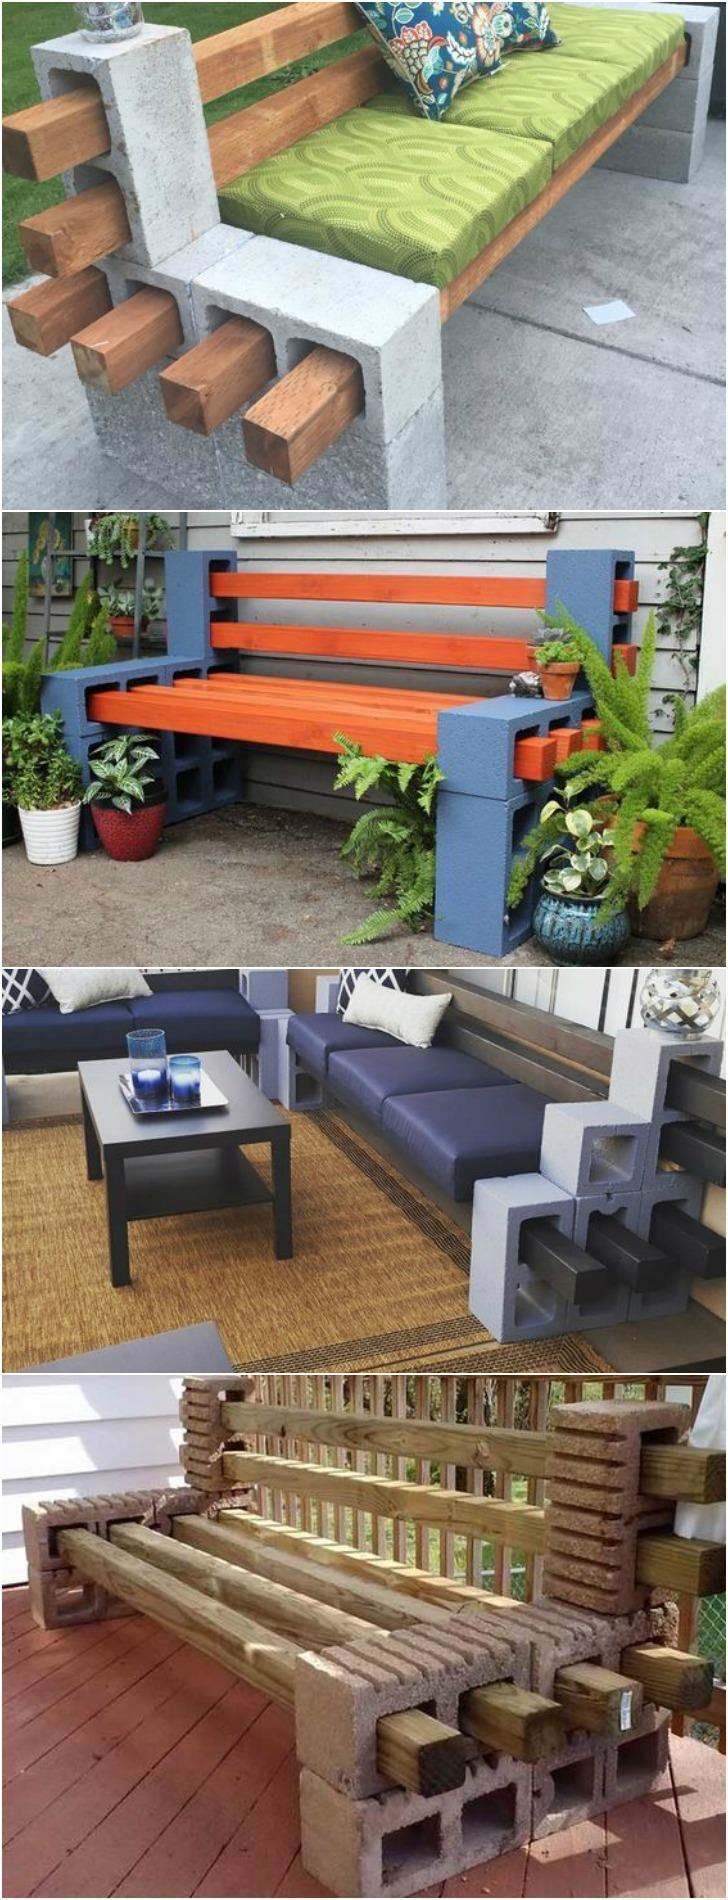 Pool patio furniture ideas - How To Make A Bench From Cinder Blocks 10 Amazing Ideas To Inspire You